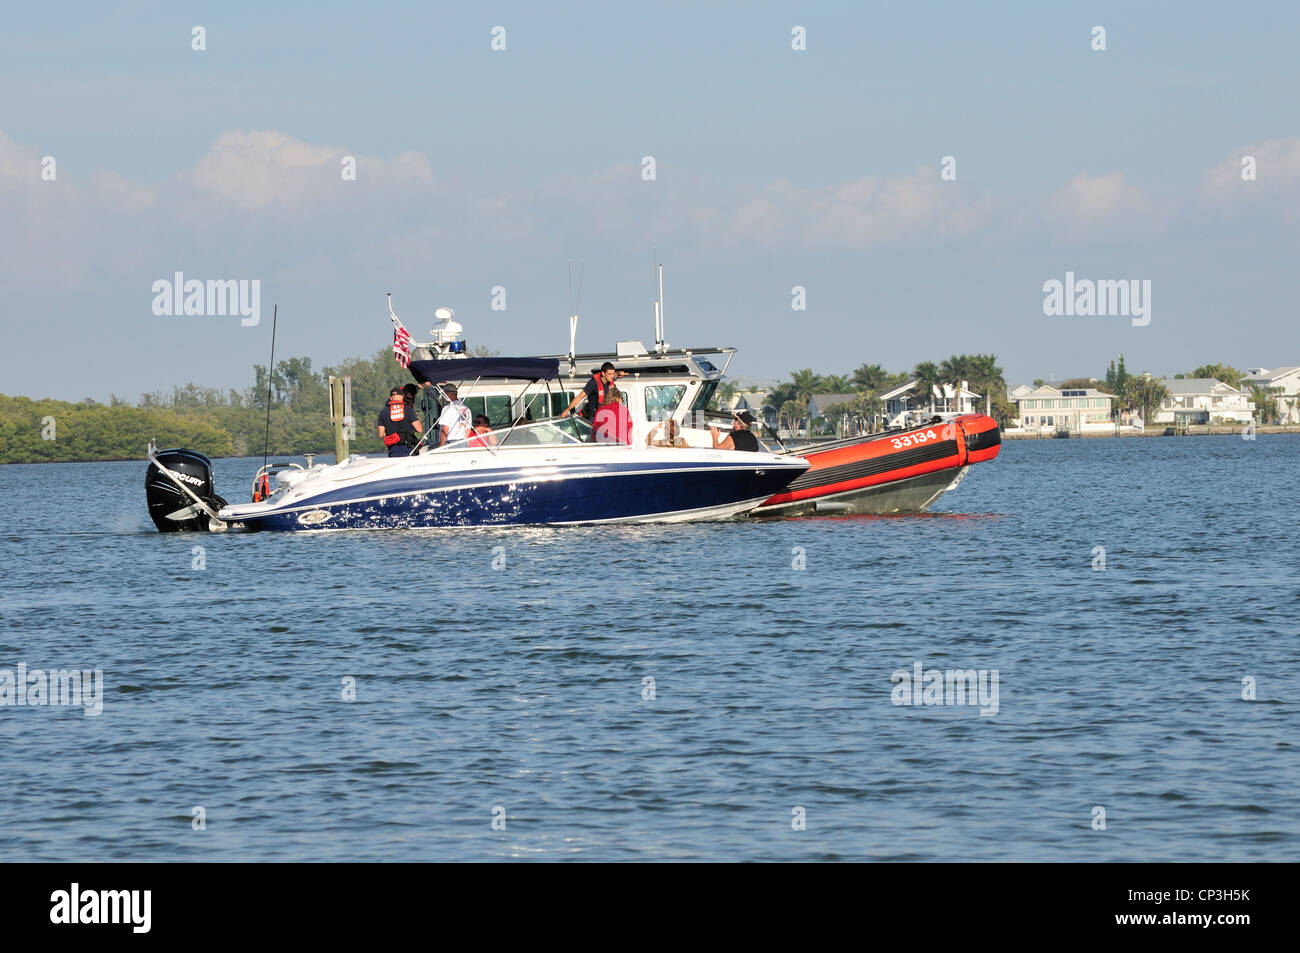 A coast guard boat tows a disabled boat near Fort Myers Beach, Florida - Stock Image